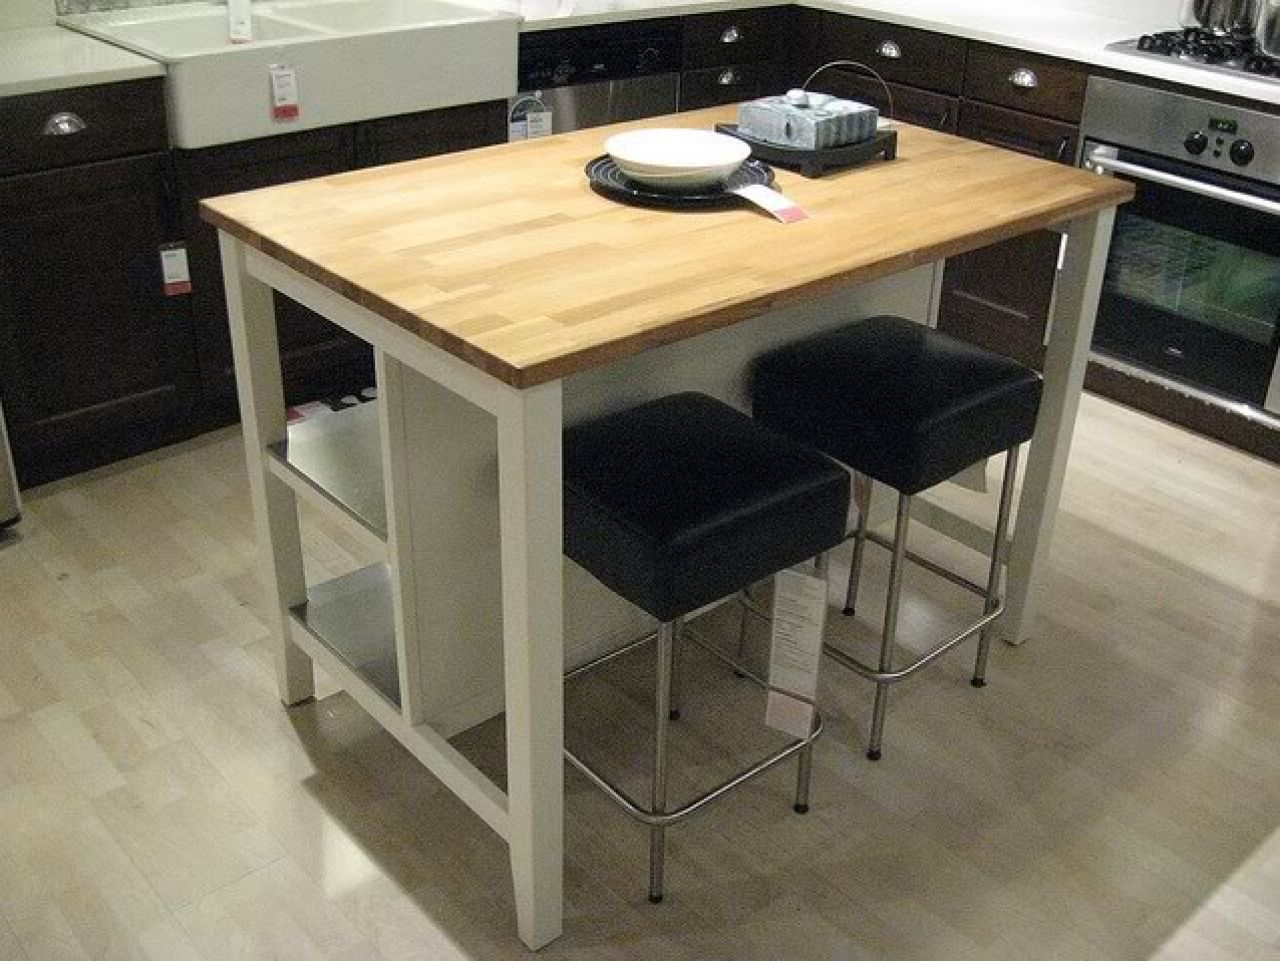 Fantastisch Kitchen Island Ikea 1 Amazing Pictures